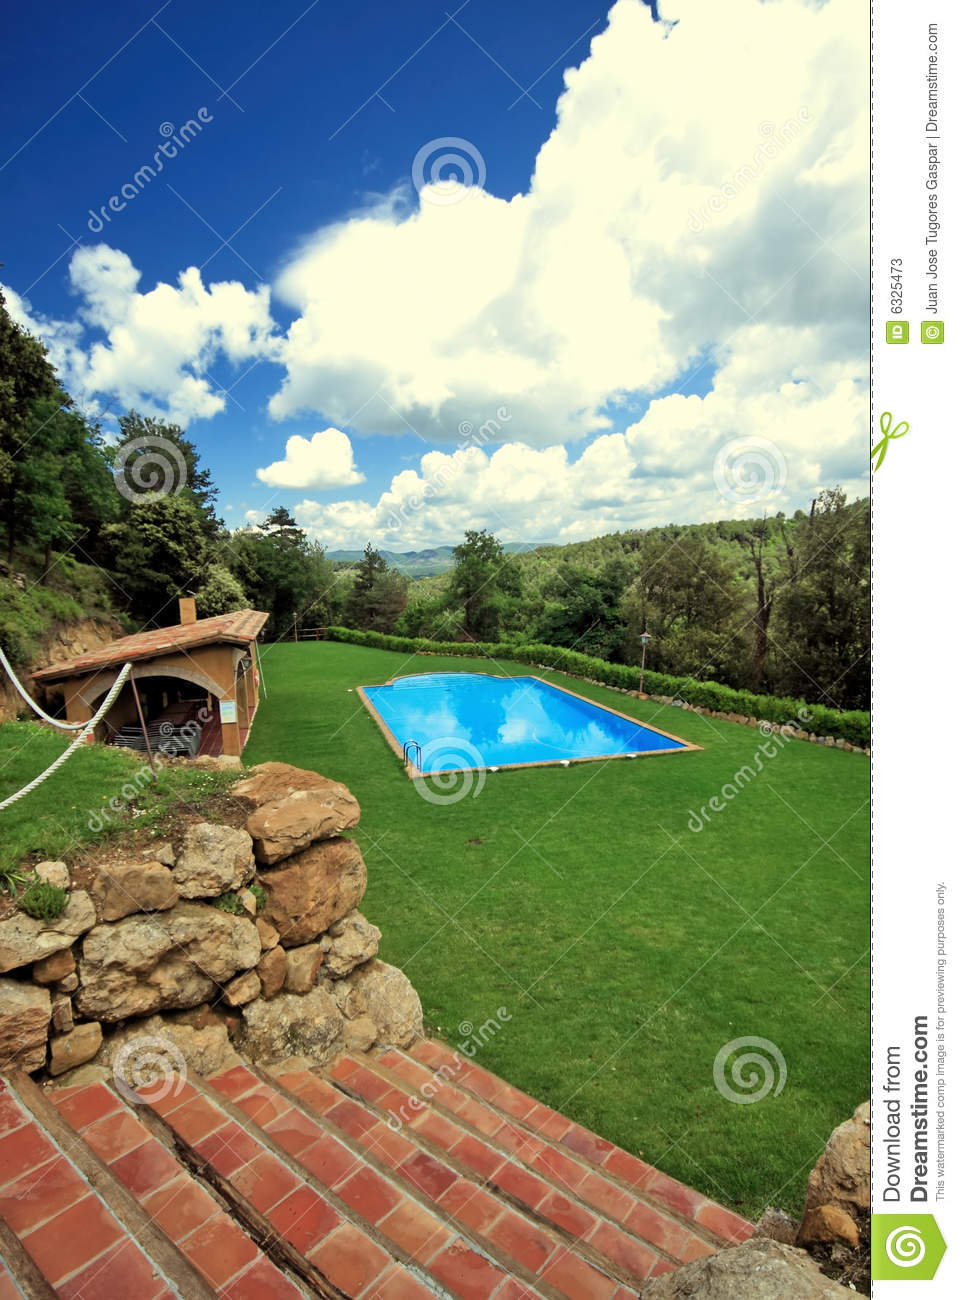 Swimming Pool Stock Photos Image 6325473